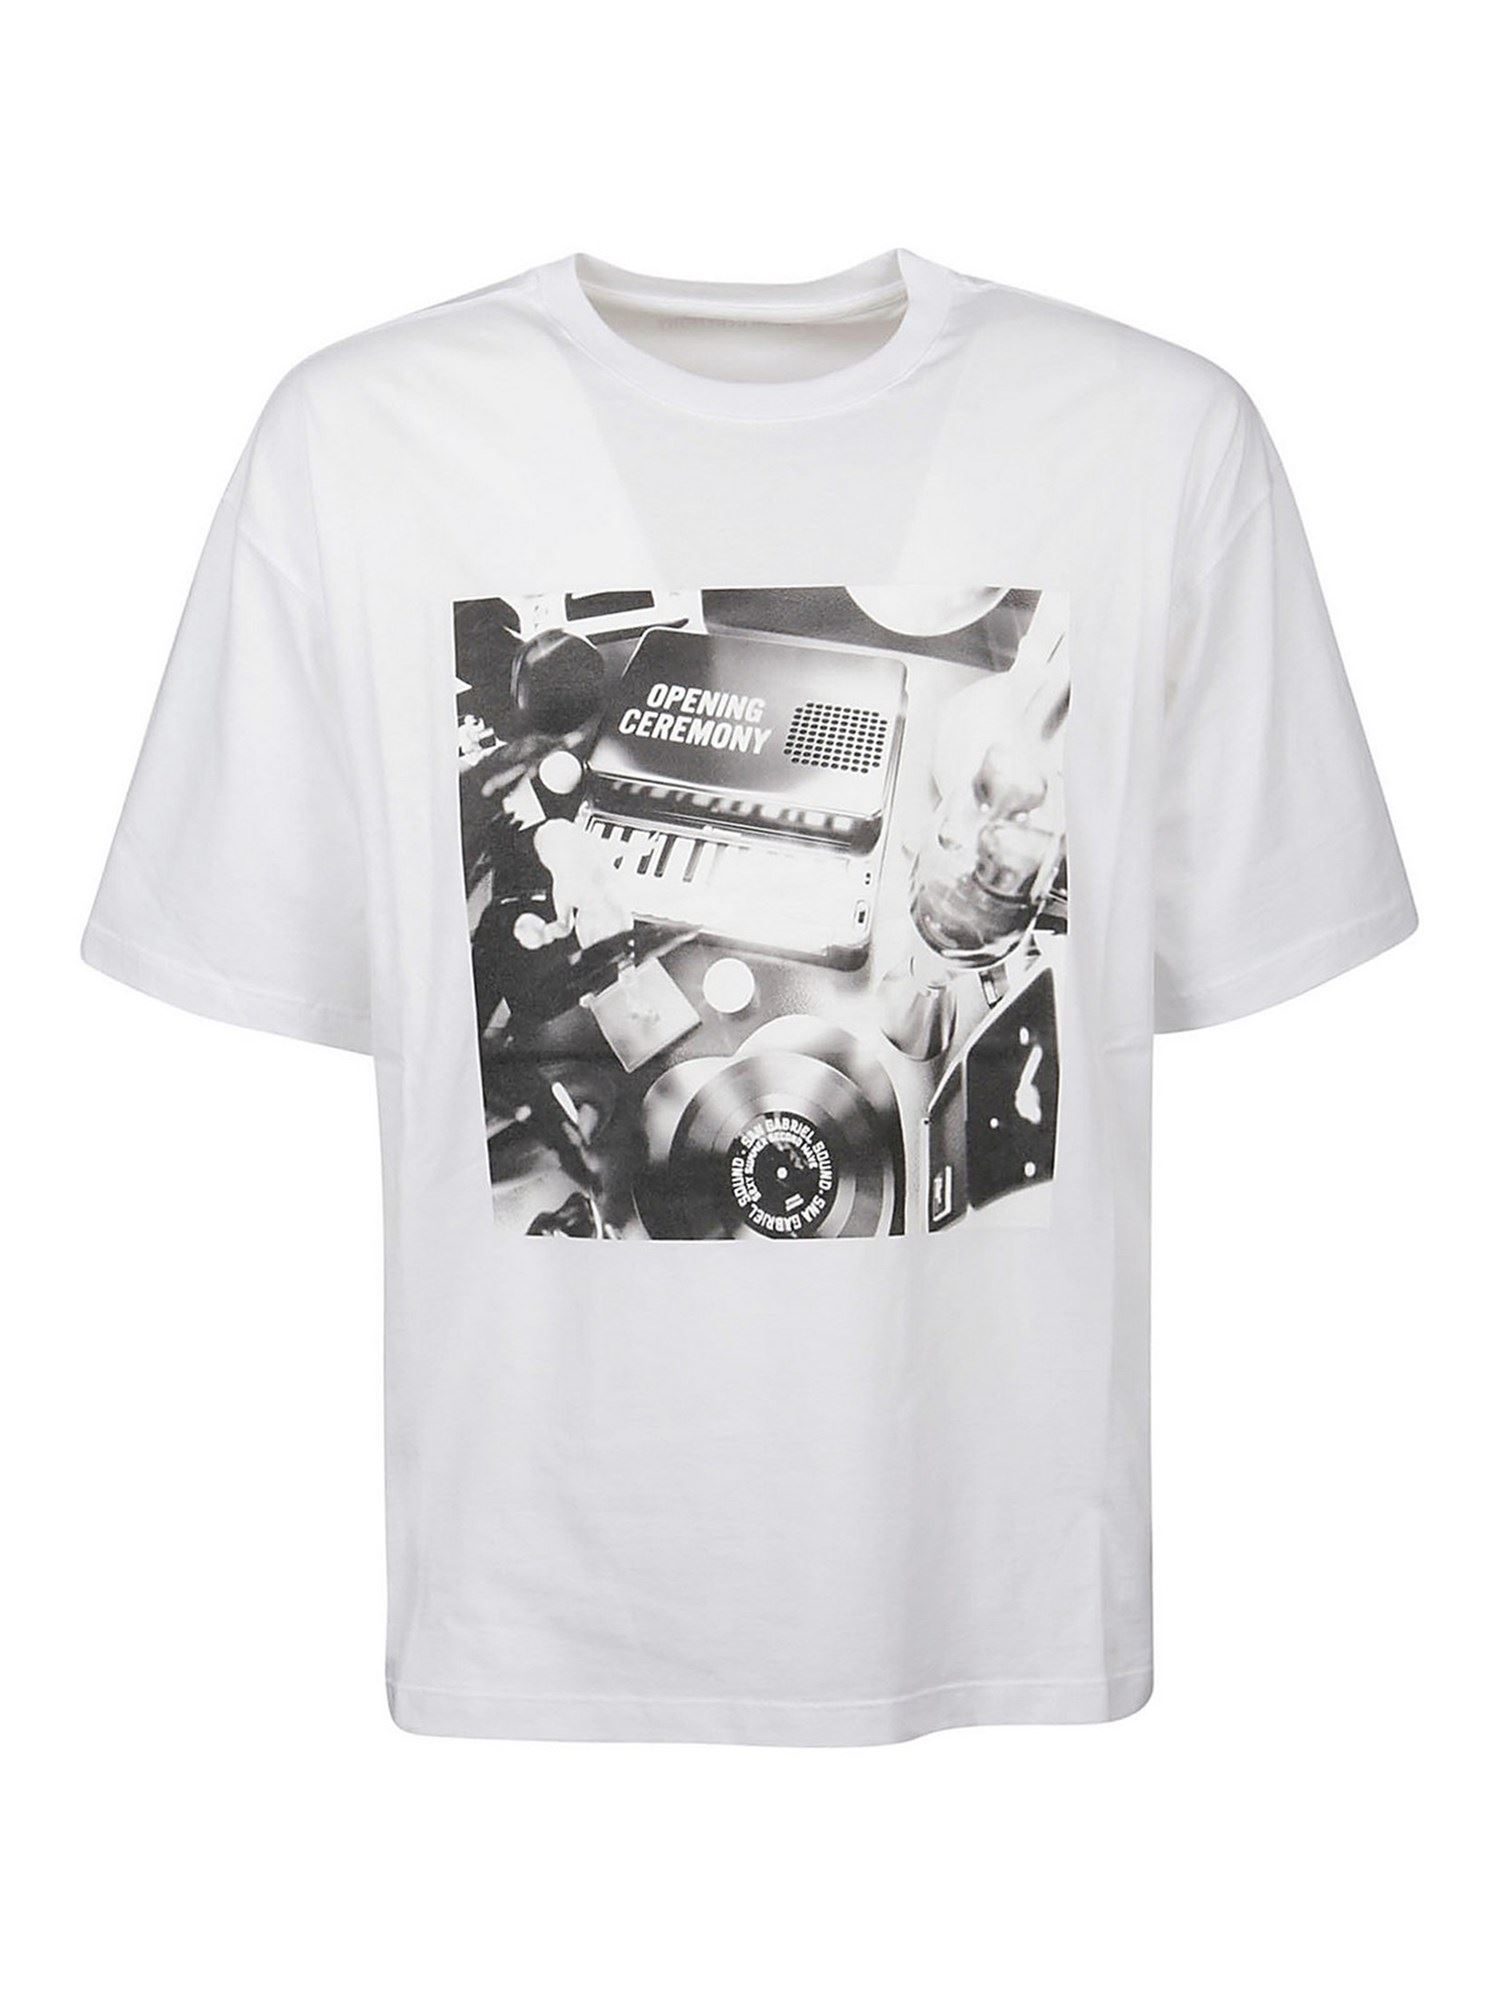 Opening Ceremony Clothing OPENING CEREMONY PIANOPRINT T-SHIRT IN WHITE